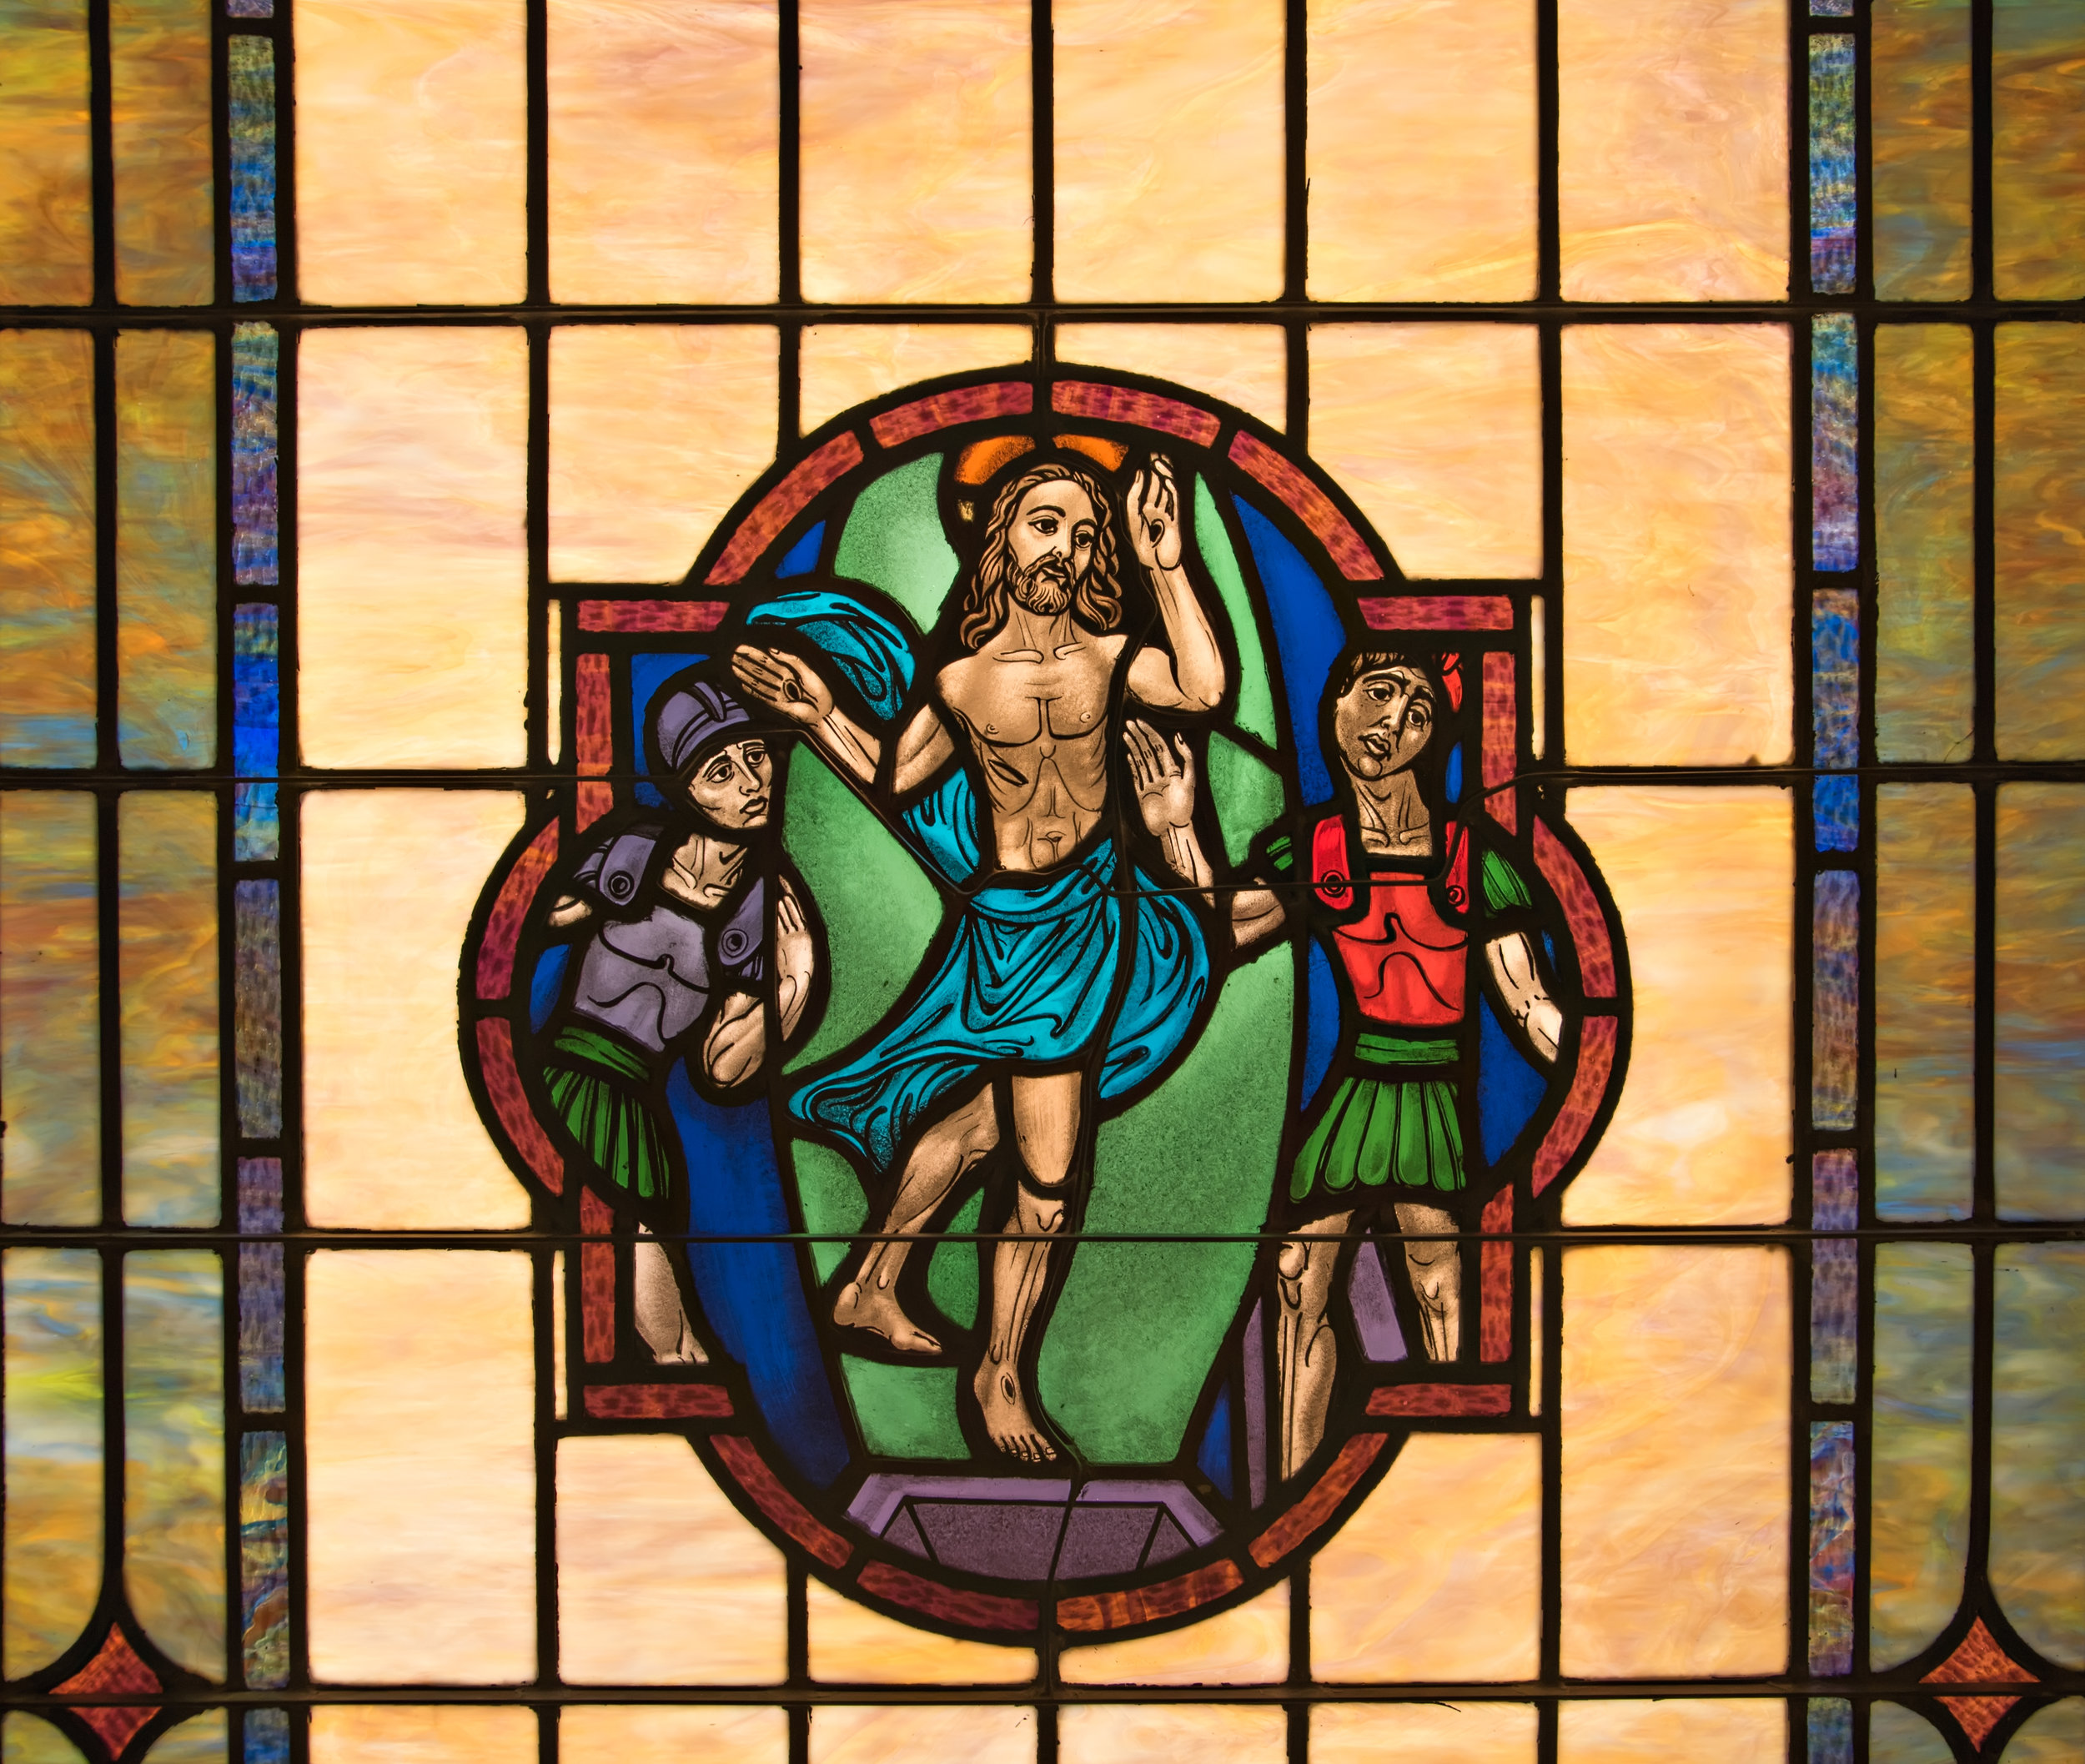 Stained_Glass-1.jpg